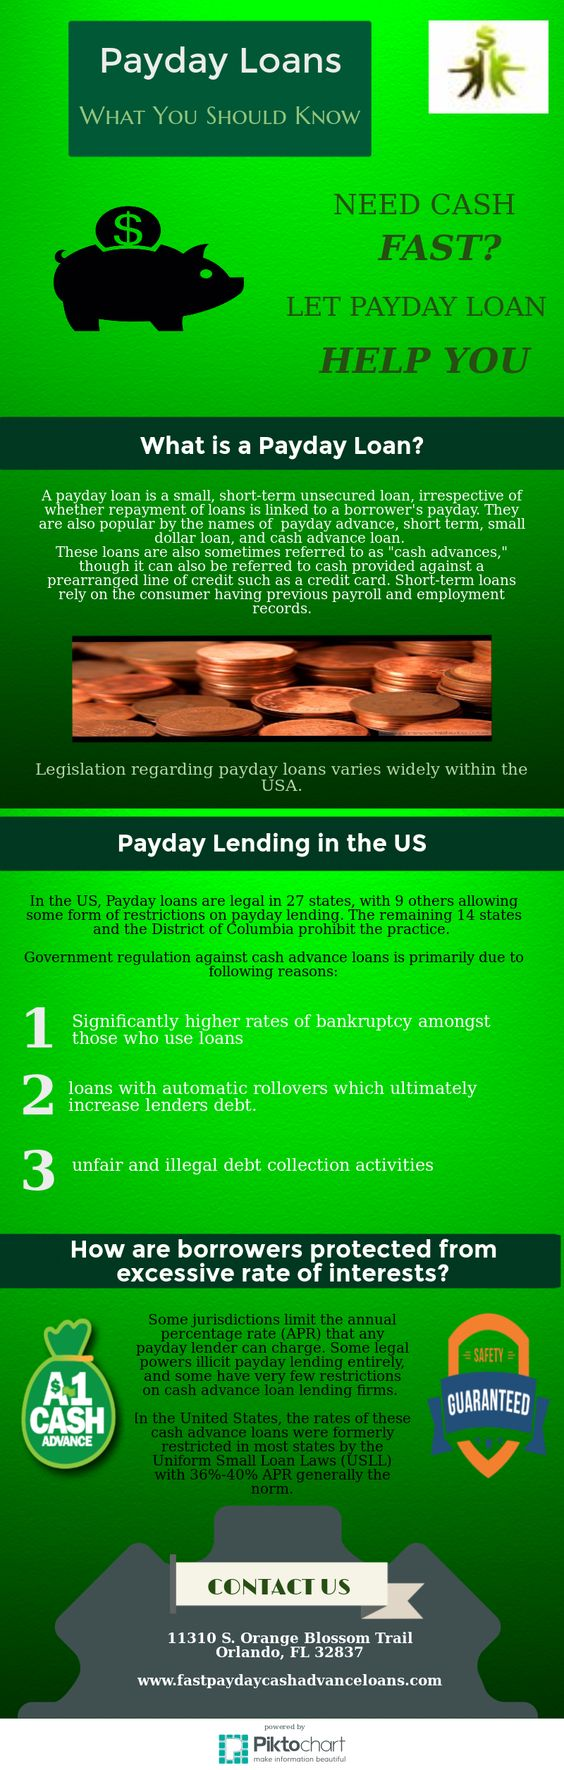 Paying off payday loans early image 8